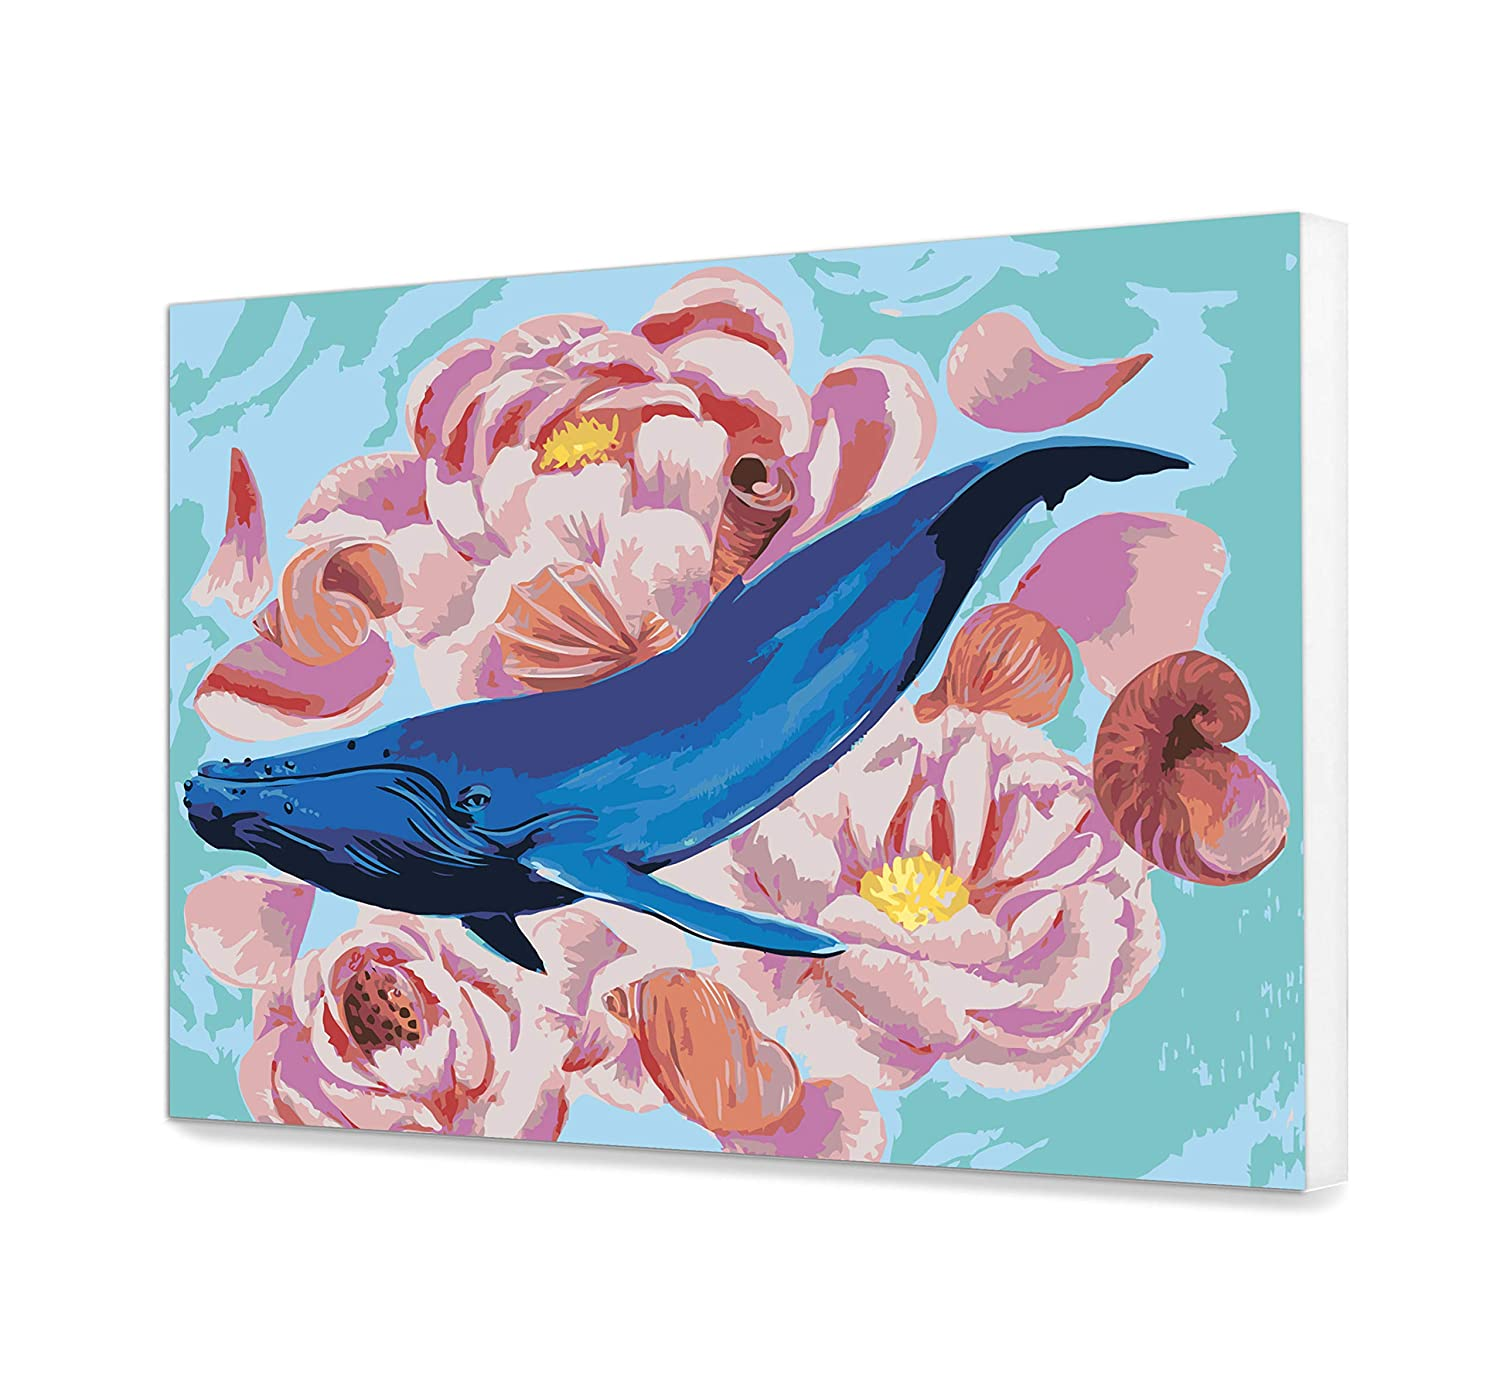 Whale Perfect Gift Idea for Painter DIY Set Flowers Paint by Numbers Intermediate Painting Kit HandMade Sea Paint Home Art Decor